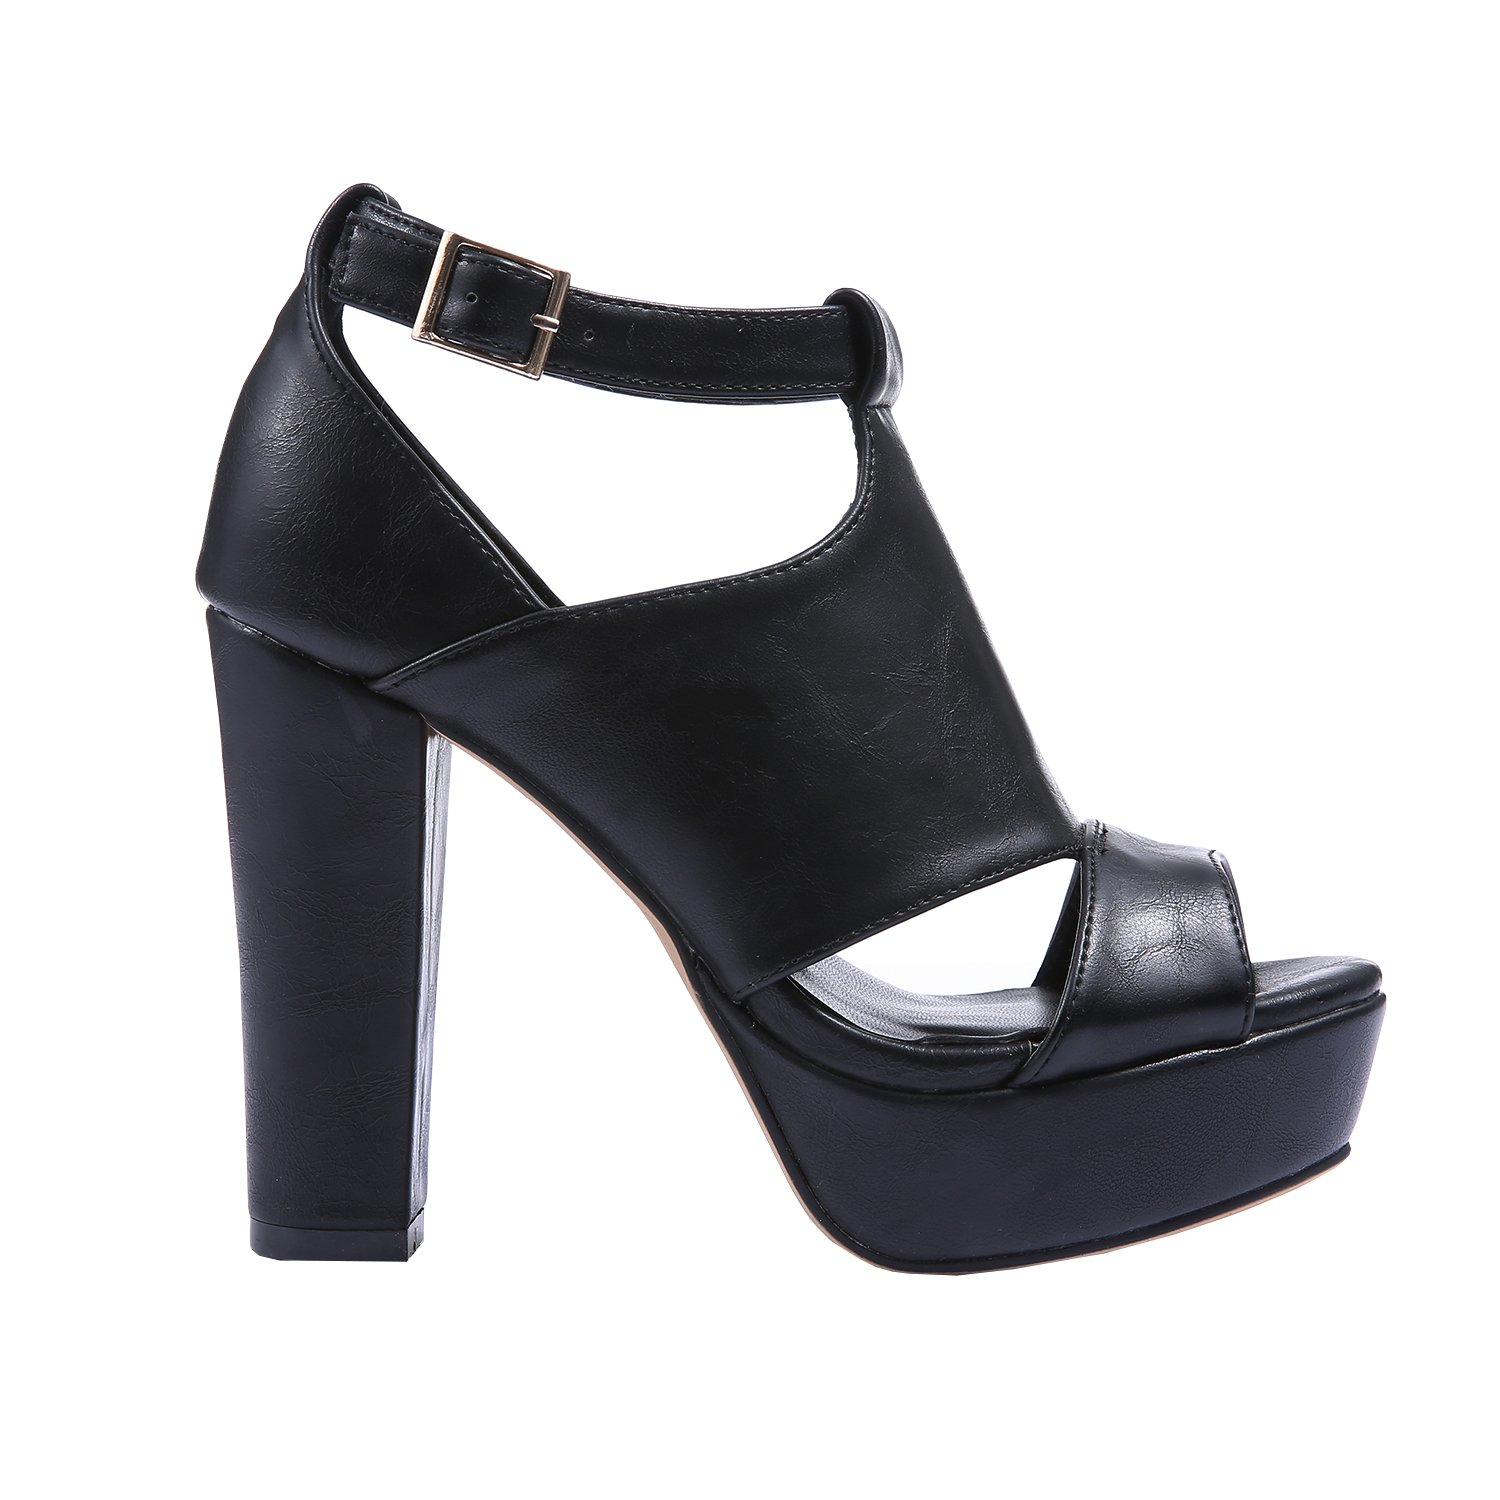 4efaaa1305 Amazon.com | Fashare Womens Peep Toe Platform Sandals Chunky Heel Buckle  Strap Pumps Shoes Sexy High Heels Black | Heeled Sandals